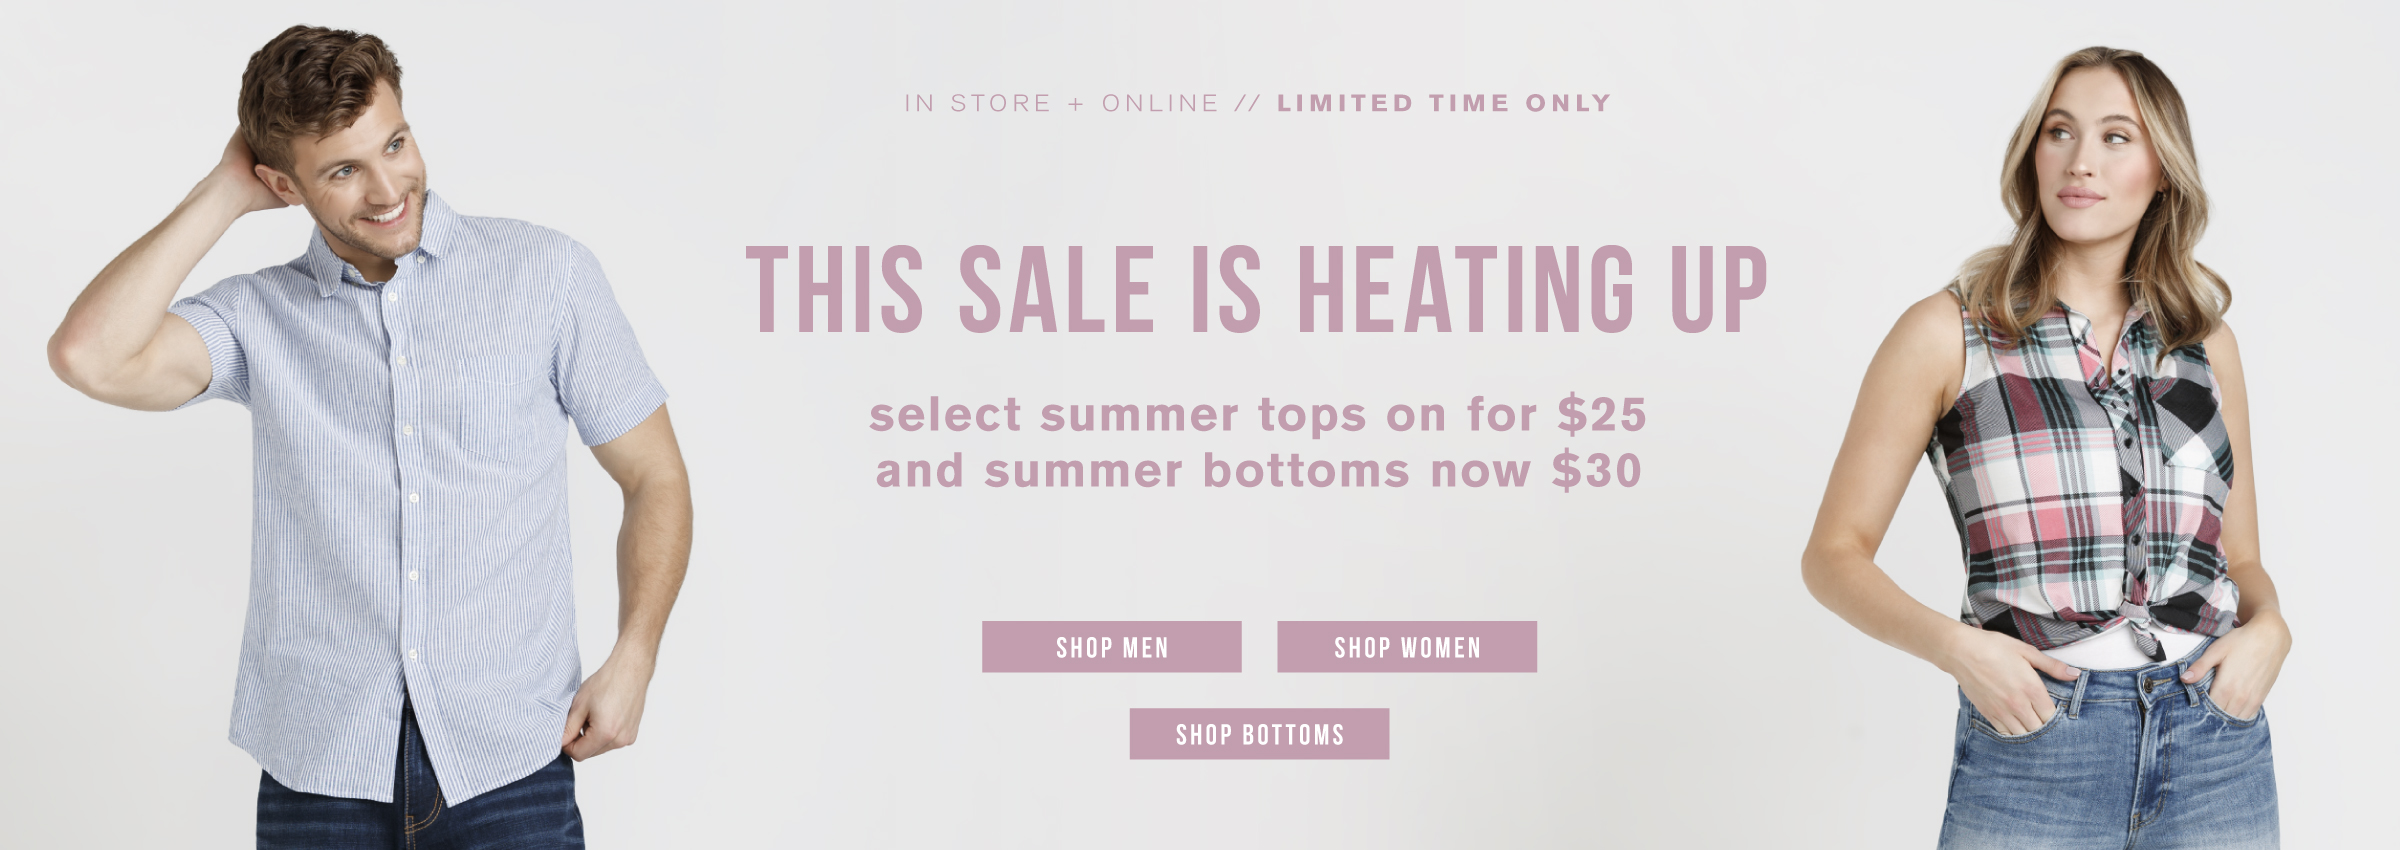 In store + online. Limited time only. This sale is heating up. Select summer tops on for $25 and summer bottoms now $30. Shop men. Shop women. Shop bottoms.